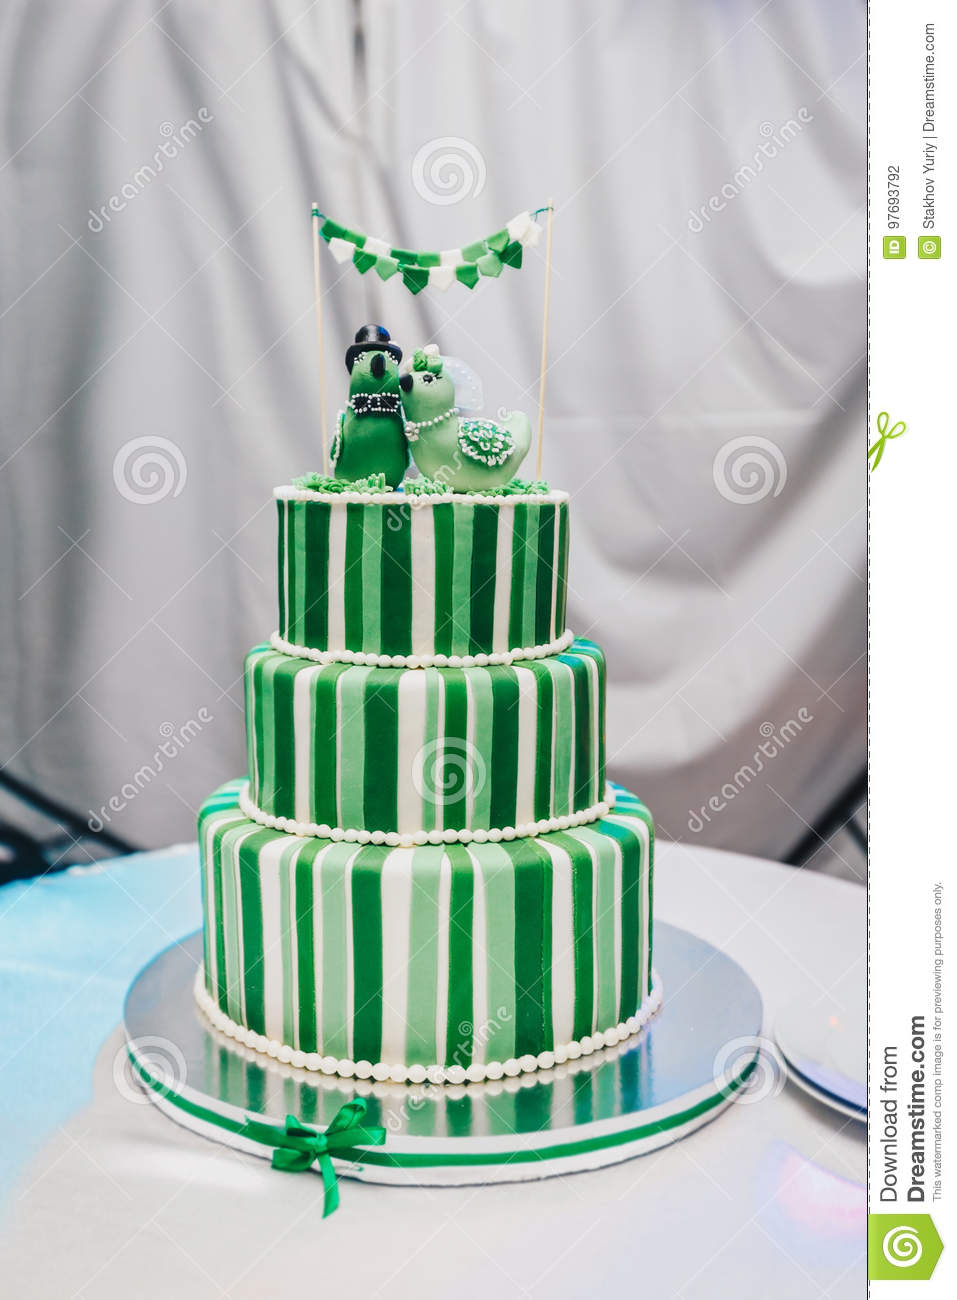 Beautiful big three leveled wedding cake decorated with two birds on the top. A green-white striped wedding cake with